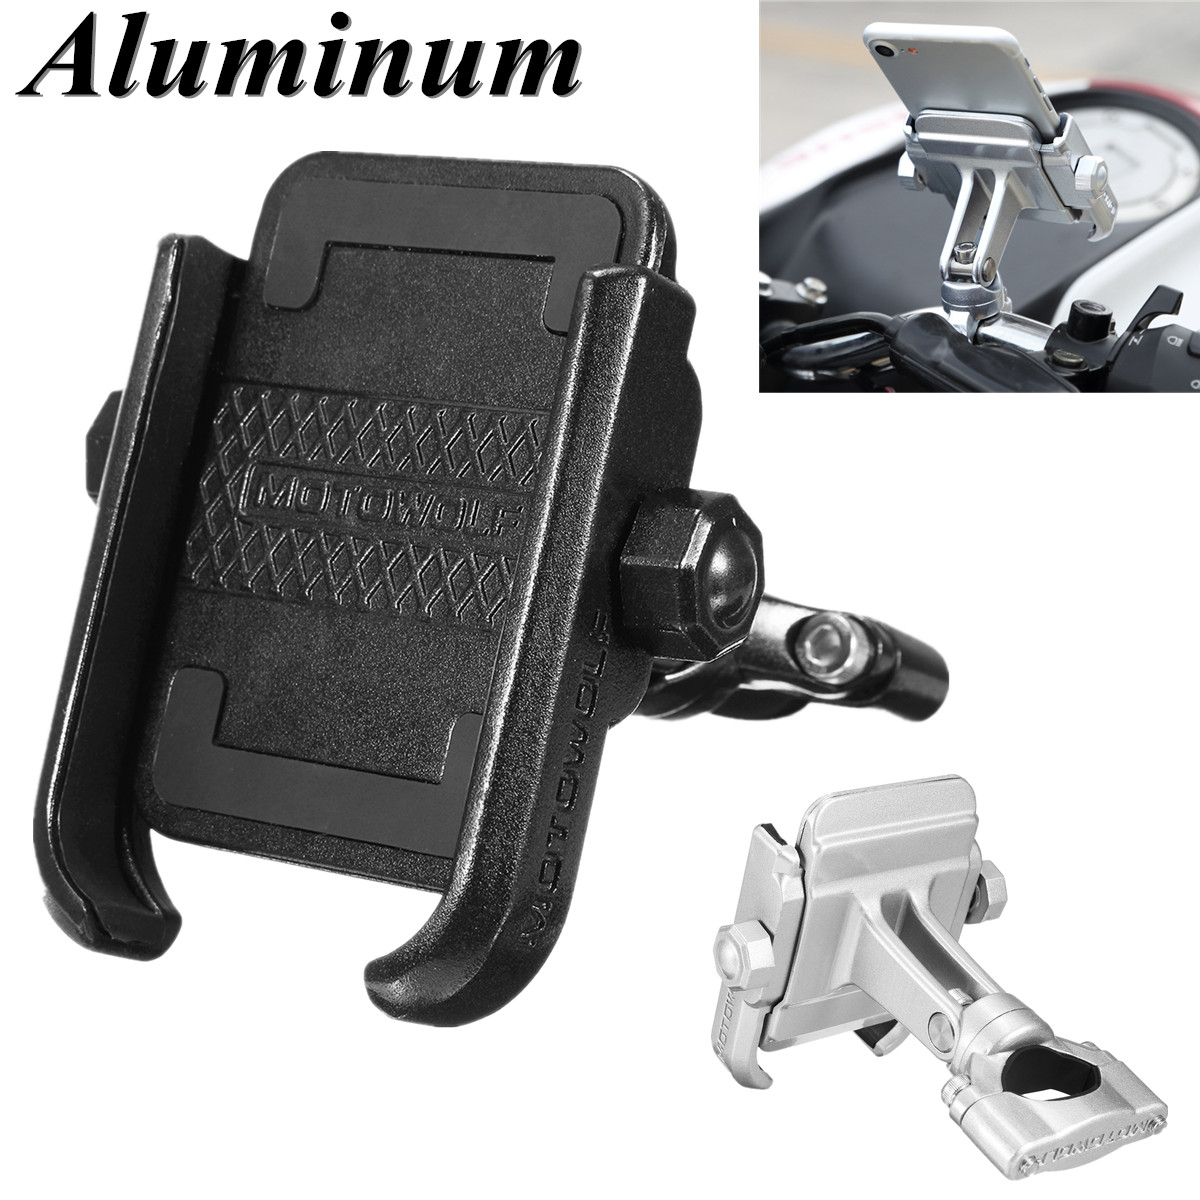 Stock Photo Manufacturer: RAM MOUNT Manufacturer Part Number: RAM-HOL-PD3U-AD Actual parts may vary. RAM UNIVERSAL PDA HOLDER Condition: New